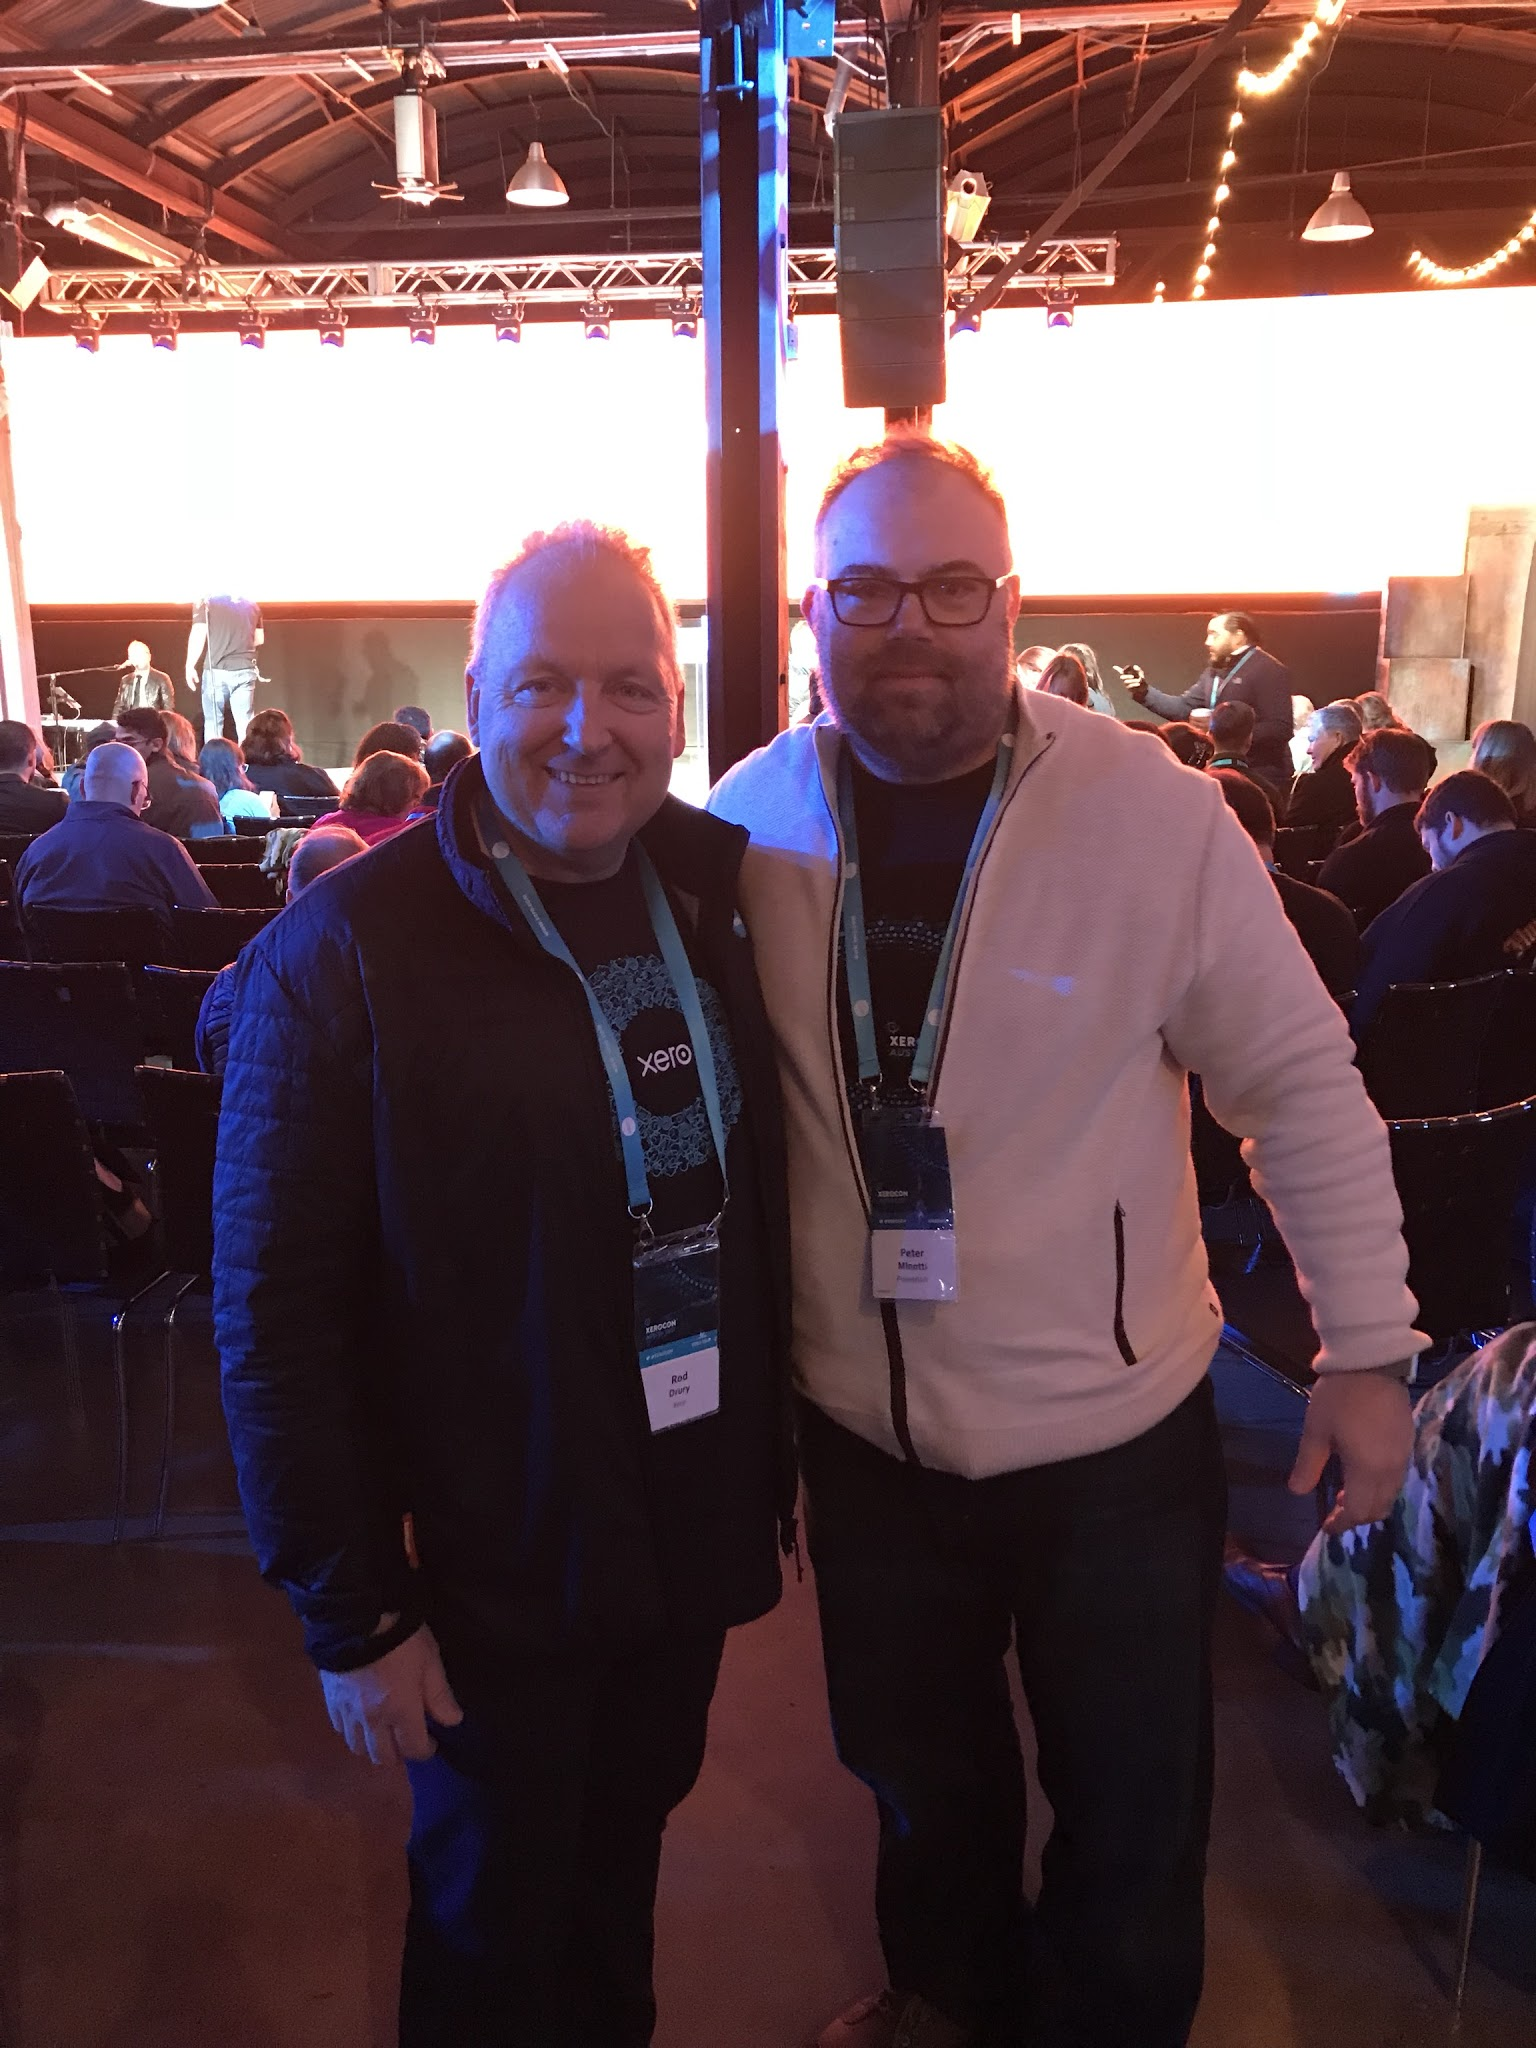 - With Rod Drury( Xero/Founder) at Xerocon Austin 2017.